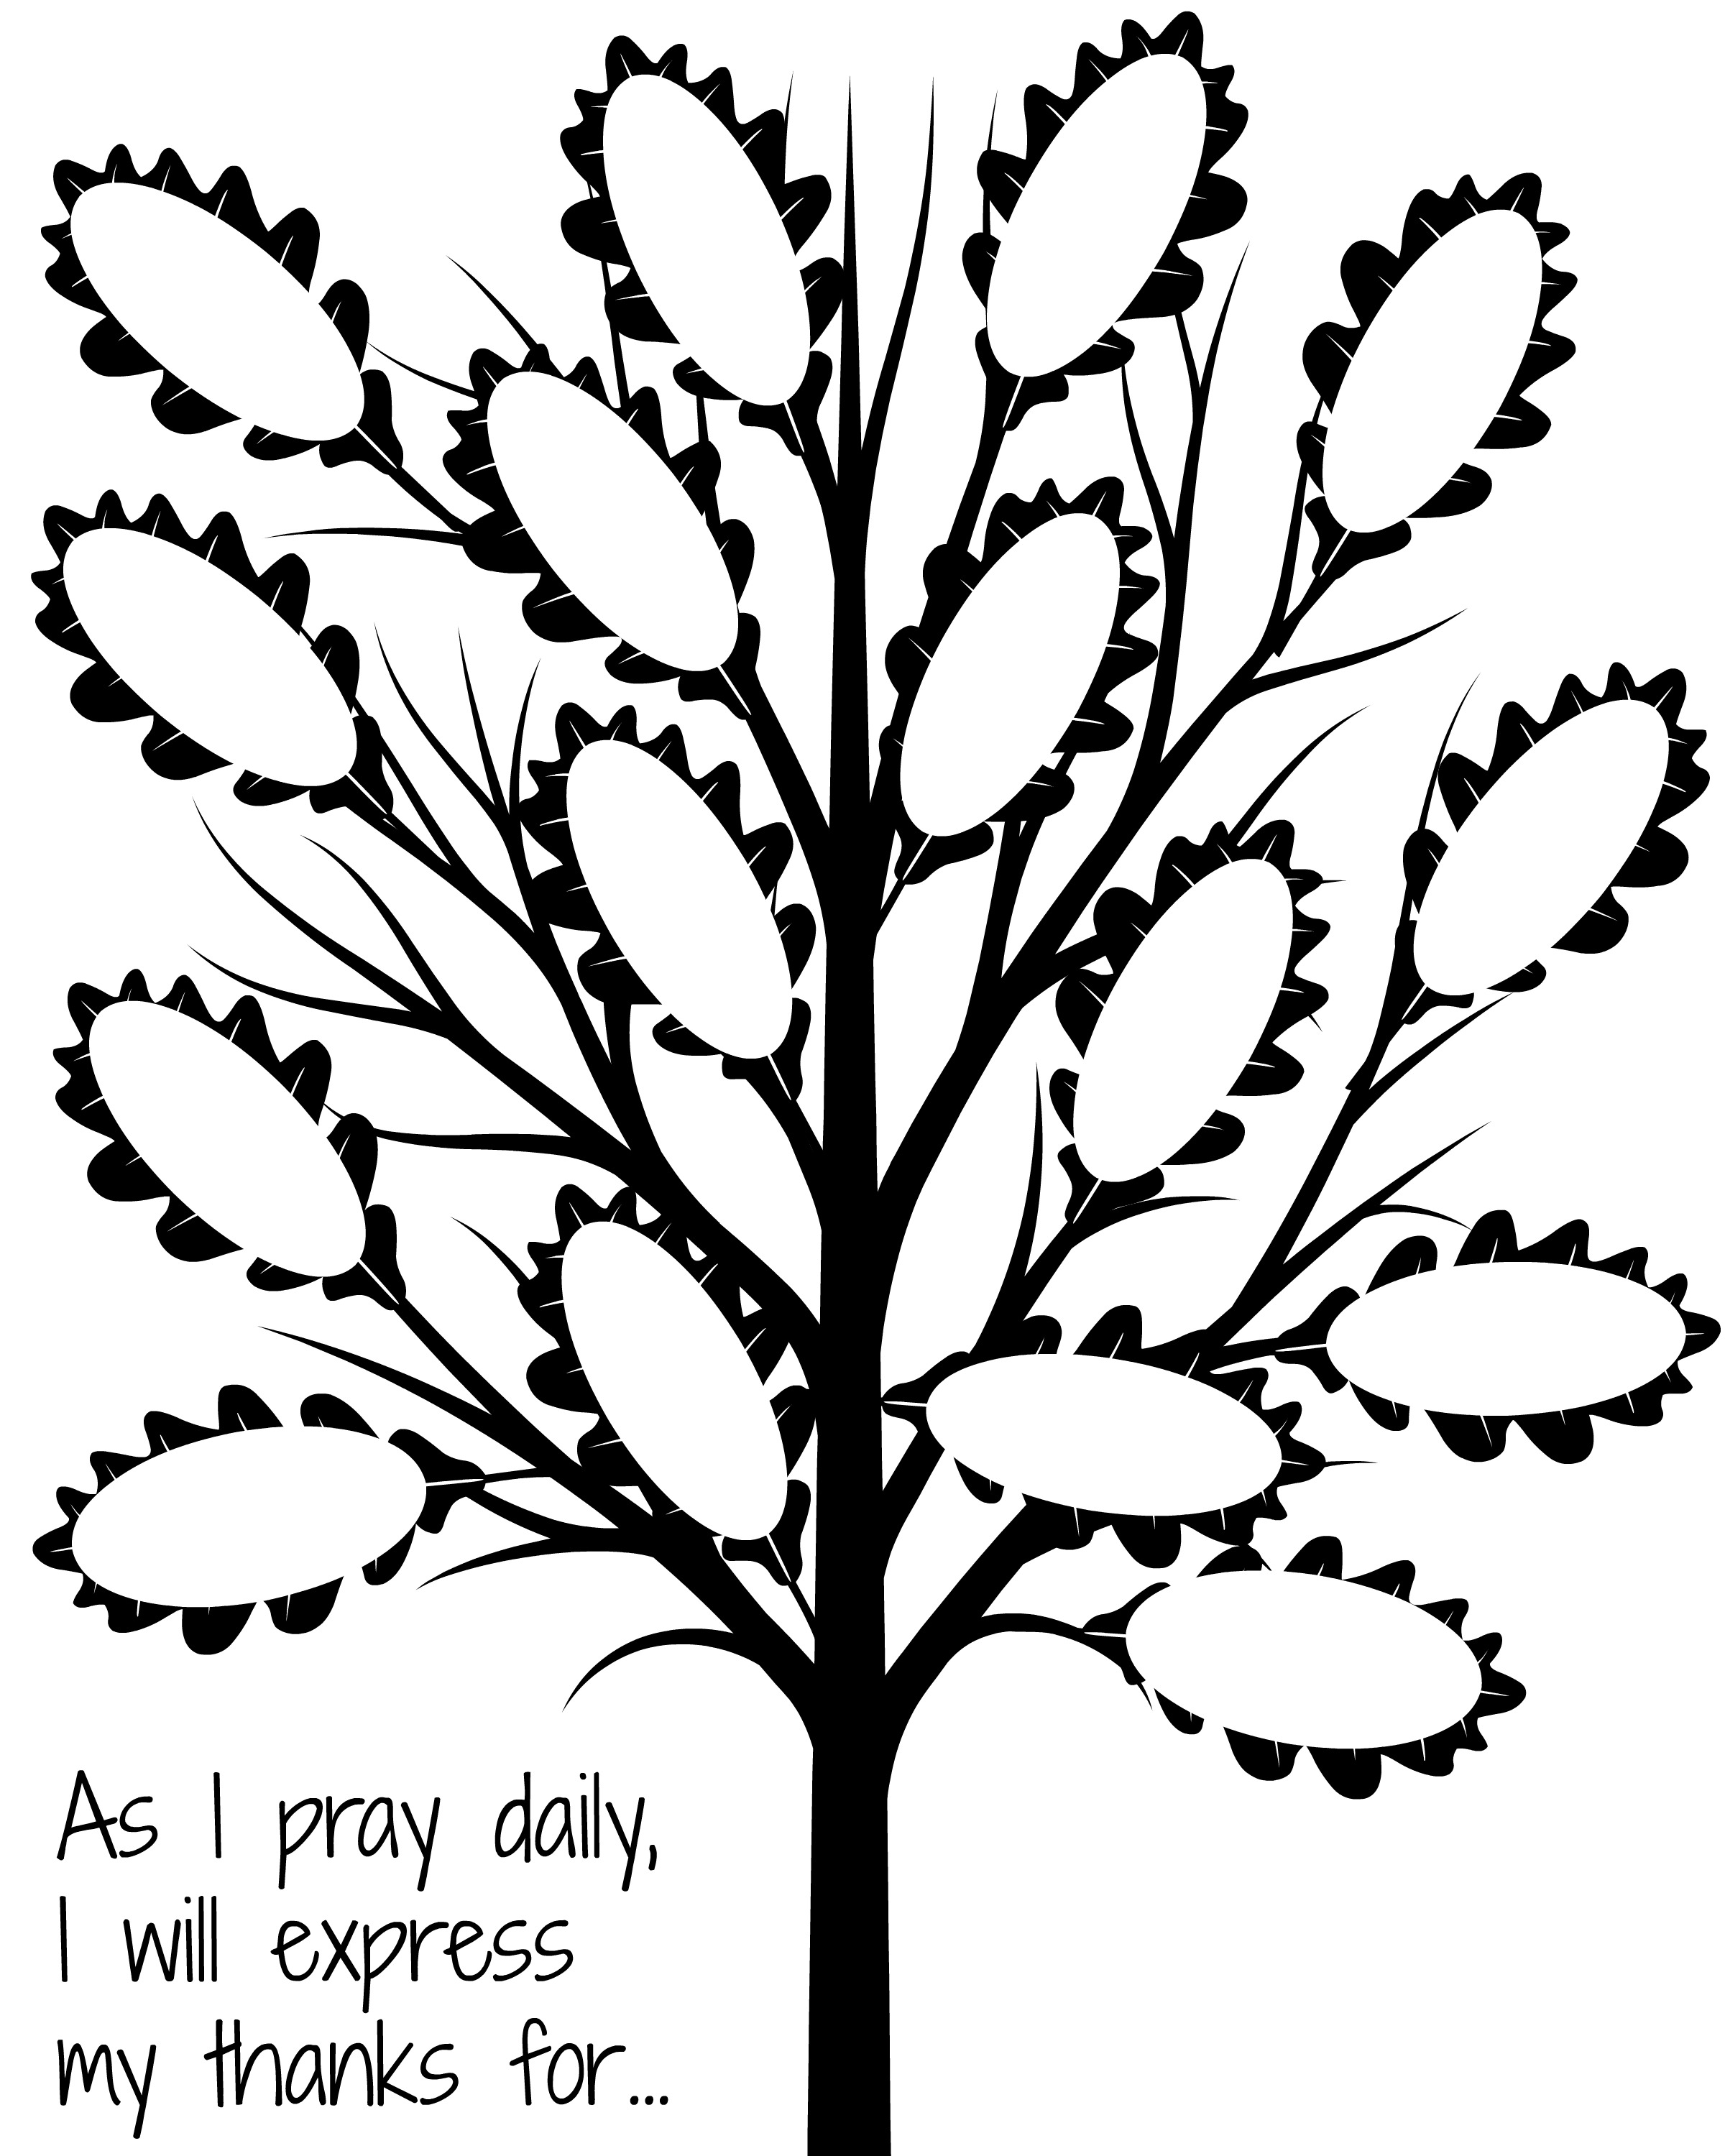 Love that this thankful tree is focus on giving thanks in your prayers!